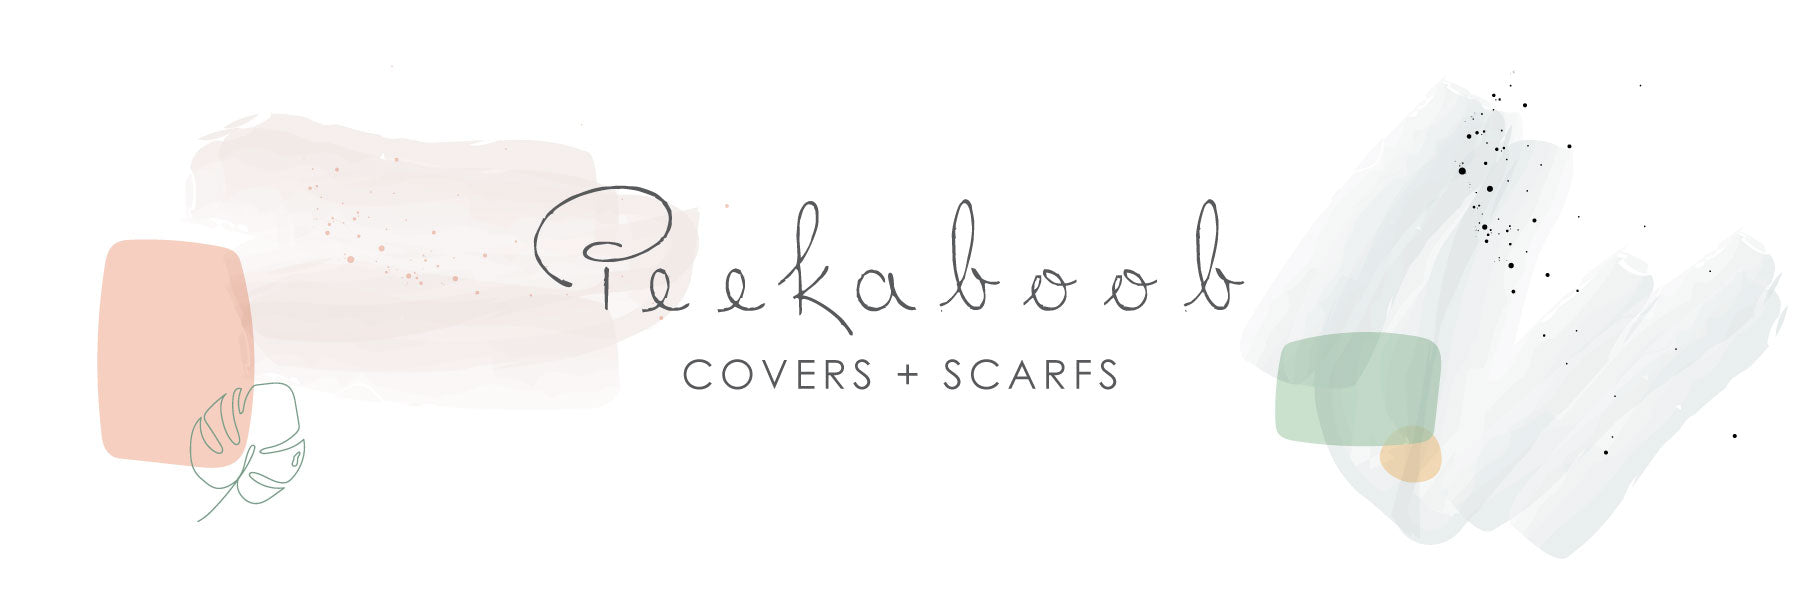 peakaboob covers + scarfs